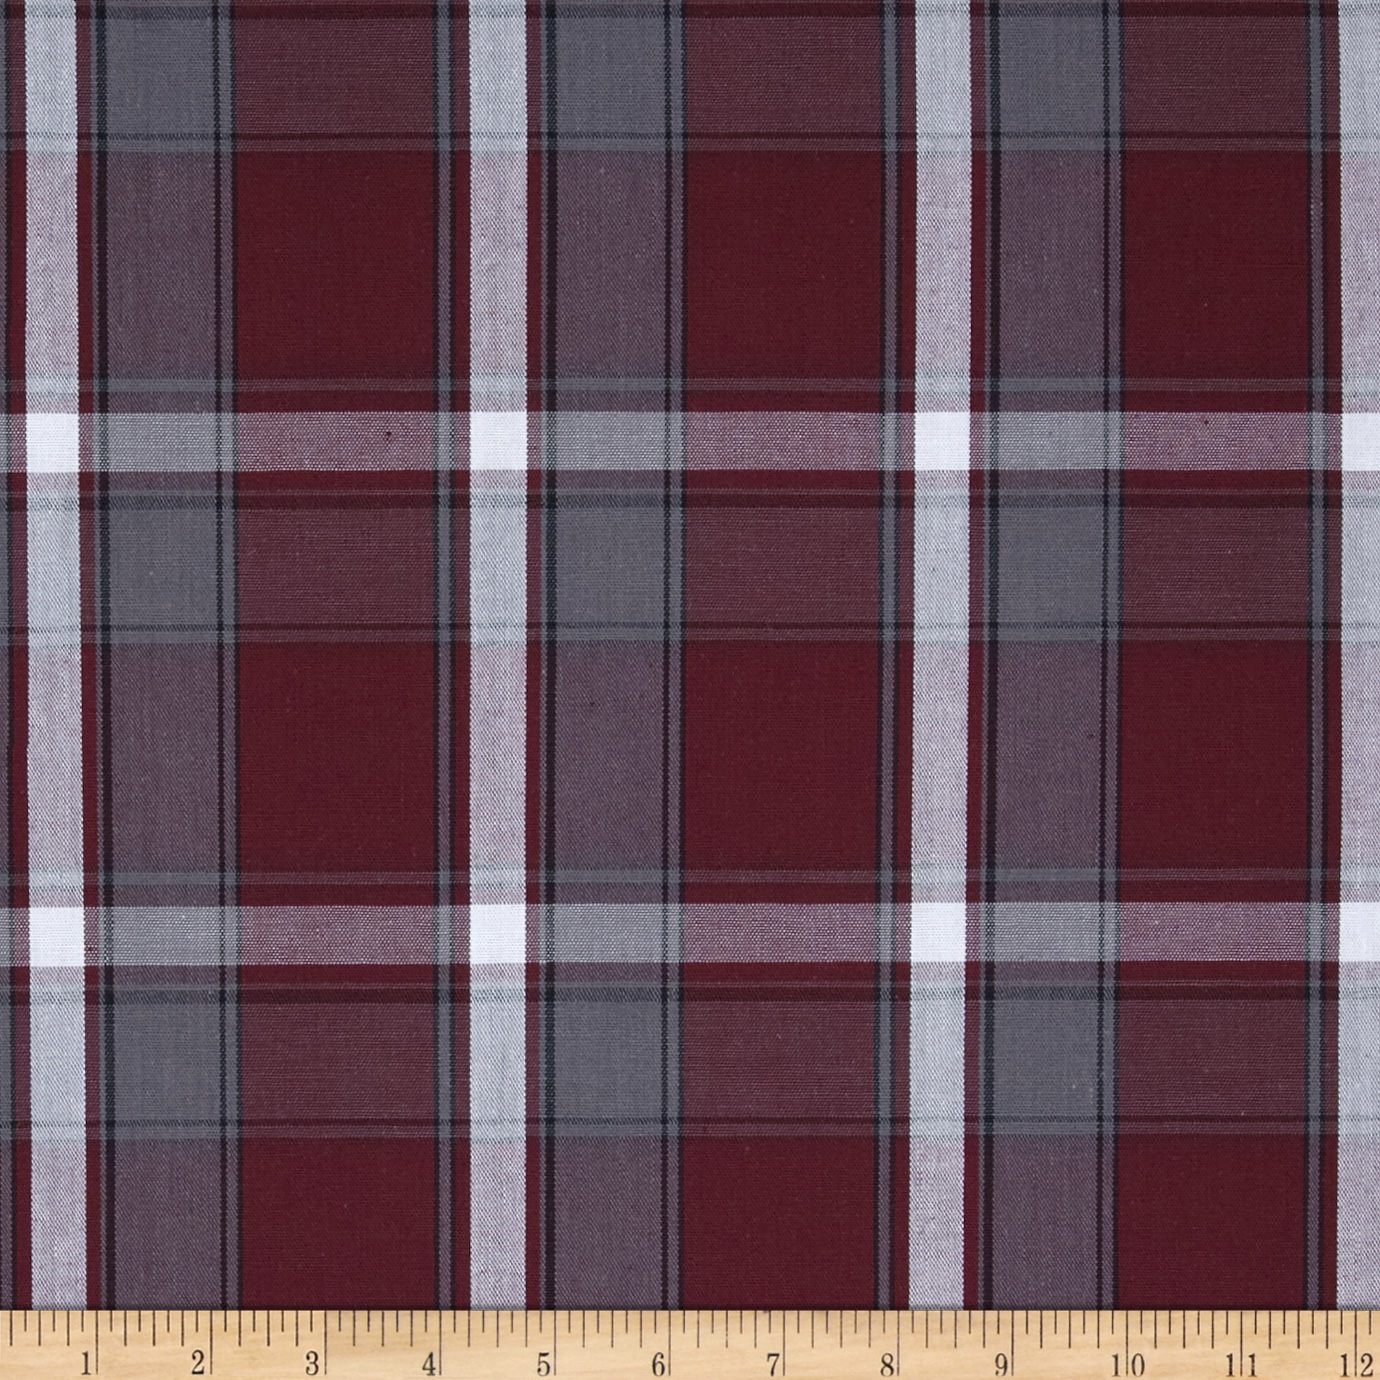 Poly/Cotton Uniform Plaid Maroon/Gray/White Fabric by Carr in USA